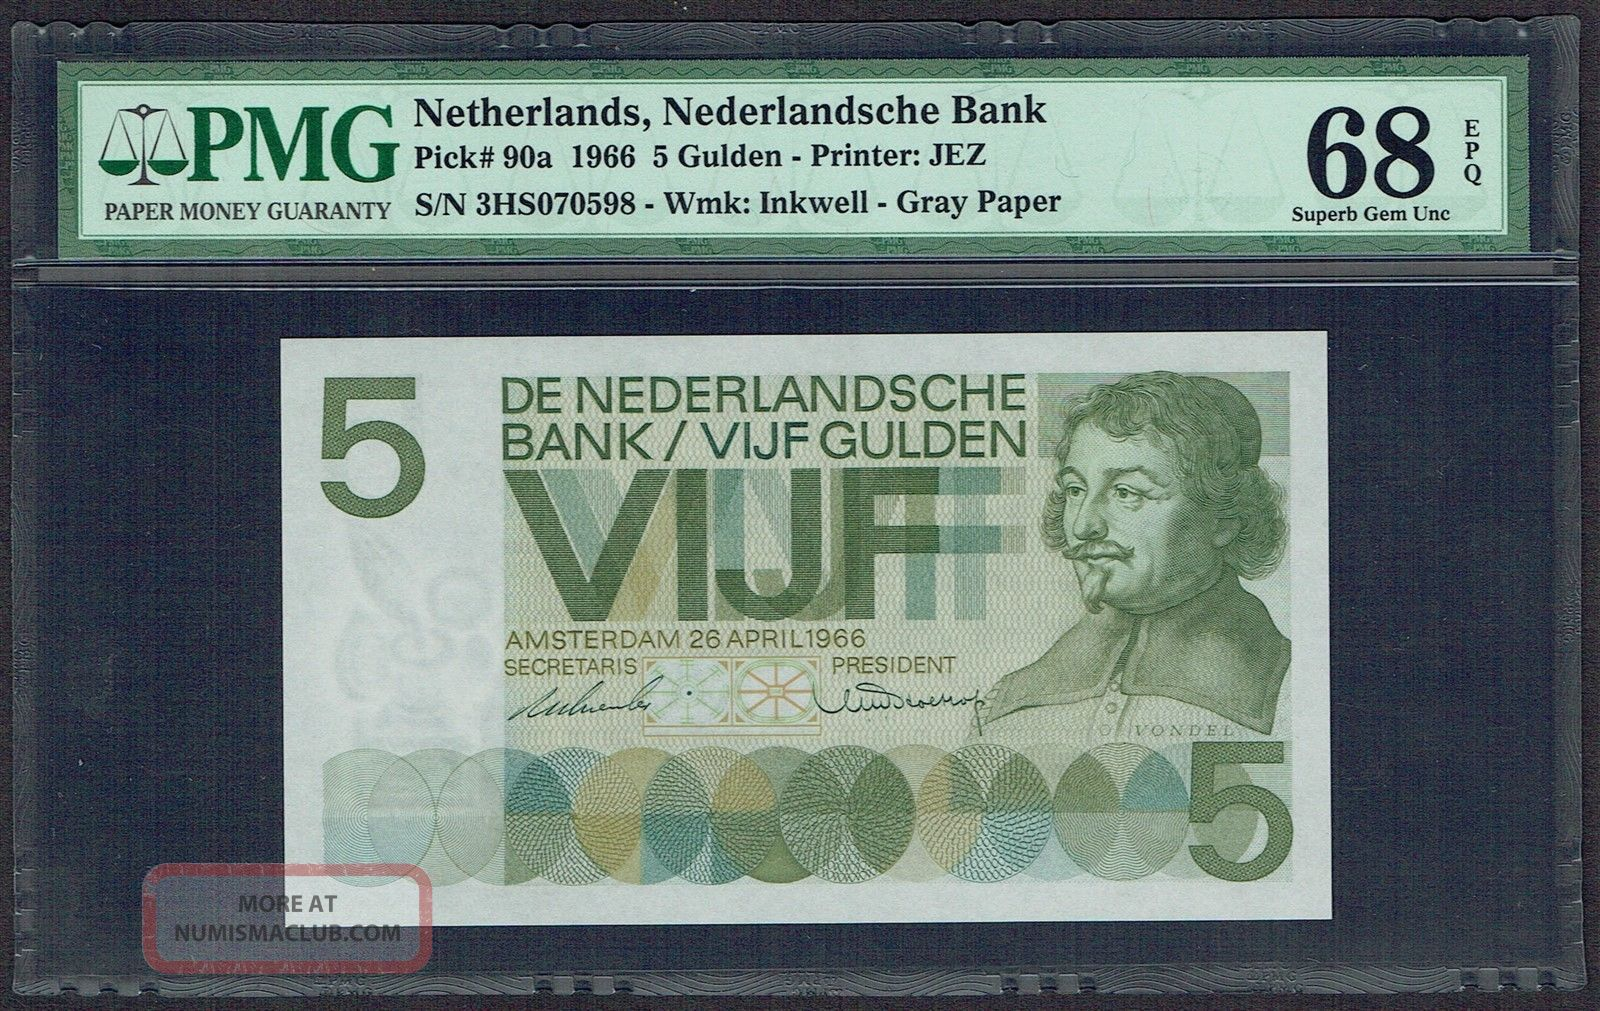 Netherlands 5 Gulden 1966 Vondel I Pmg Gem Unc 68epq P90 Europe photo